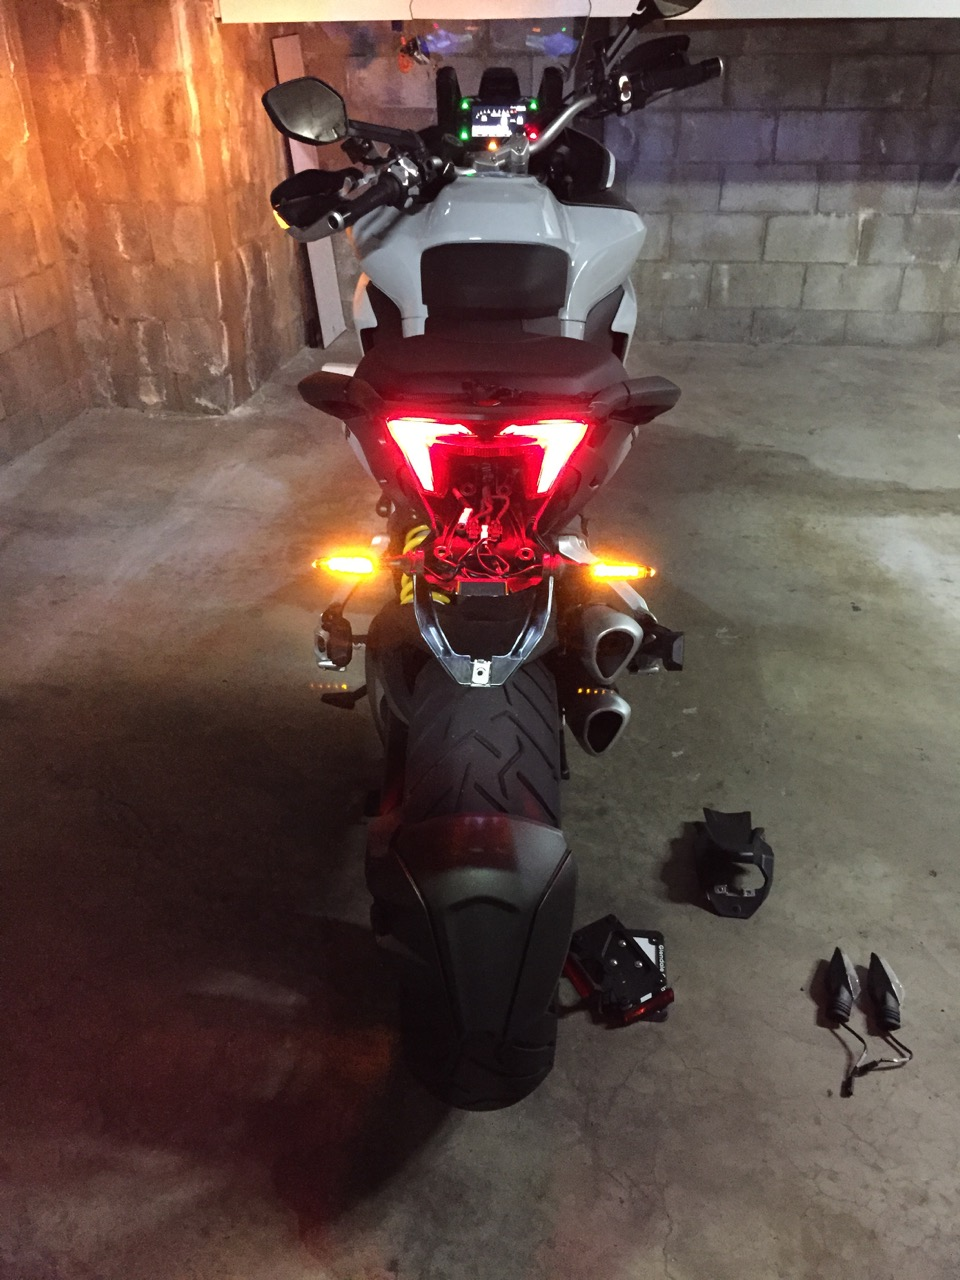 http://www.ducati.ms/forums/attachments/multistrada/569841d1435460991-have-you-installed-led-rear-indicators-2015-dvt-led-lights-6.jpg